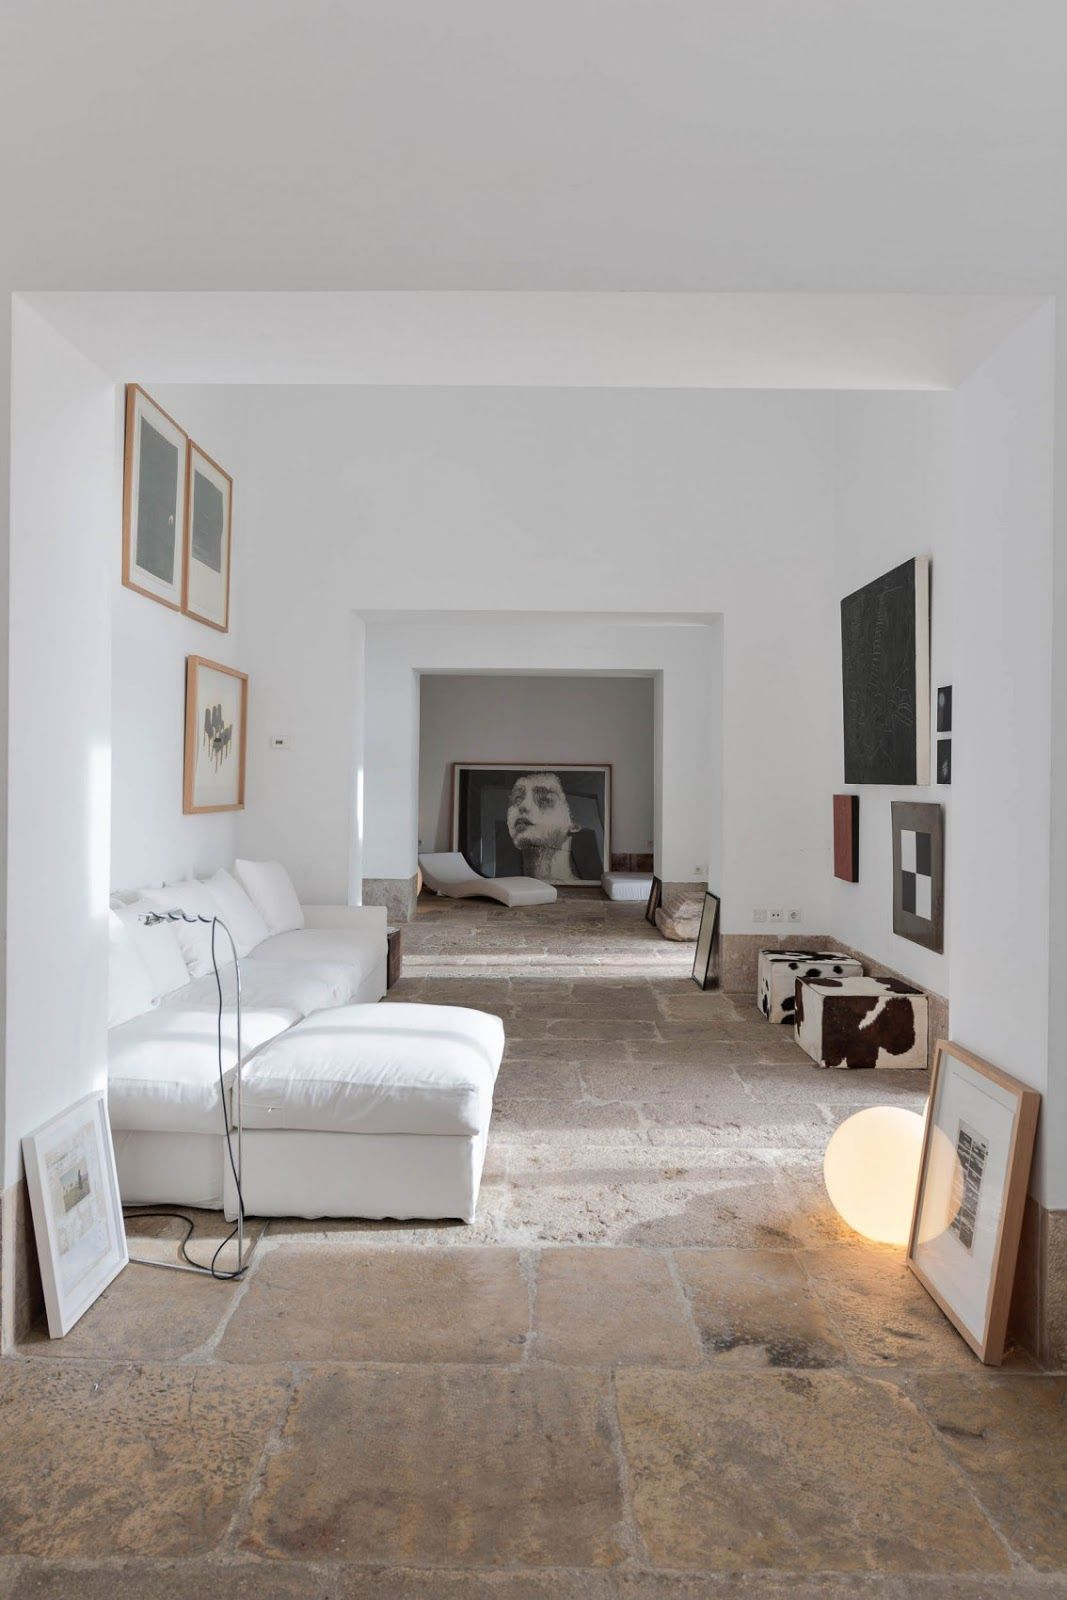 Gallery Of S Mamede House Aires Mateus 24 Interior Home House Design #nice #decor #in #living #room